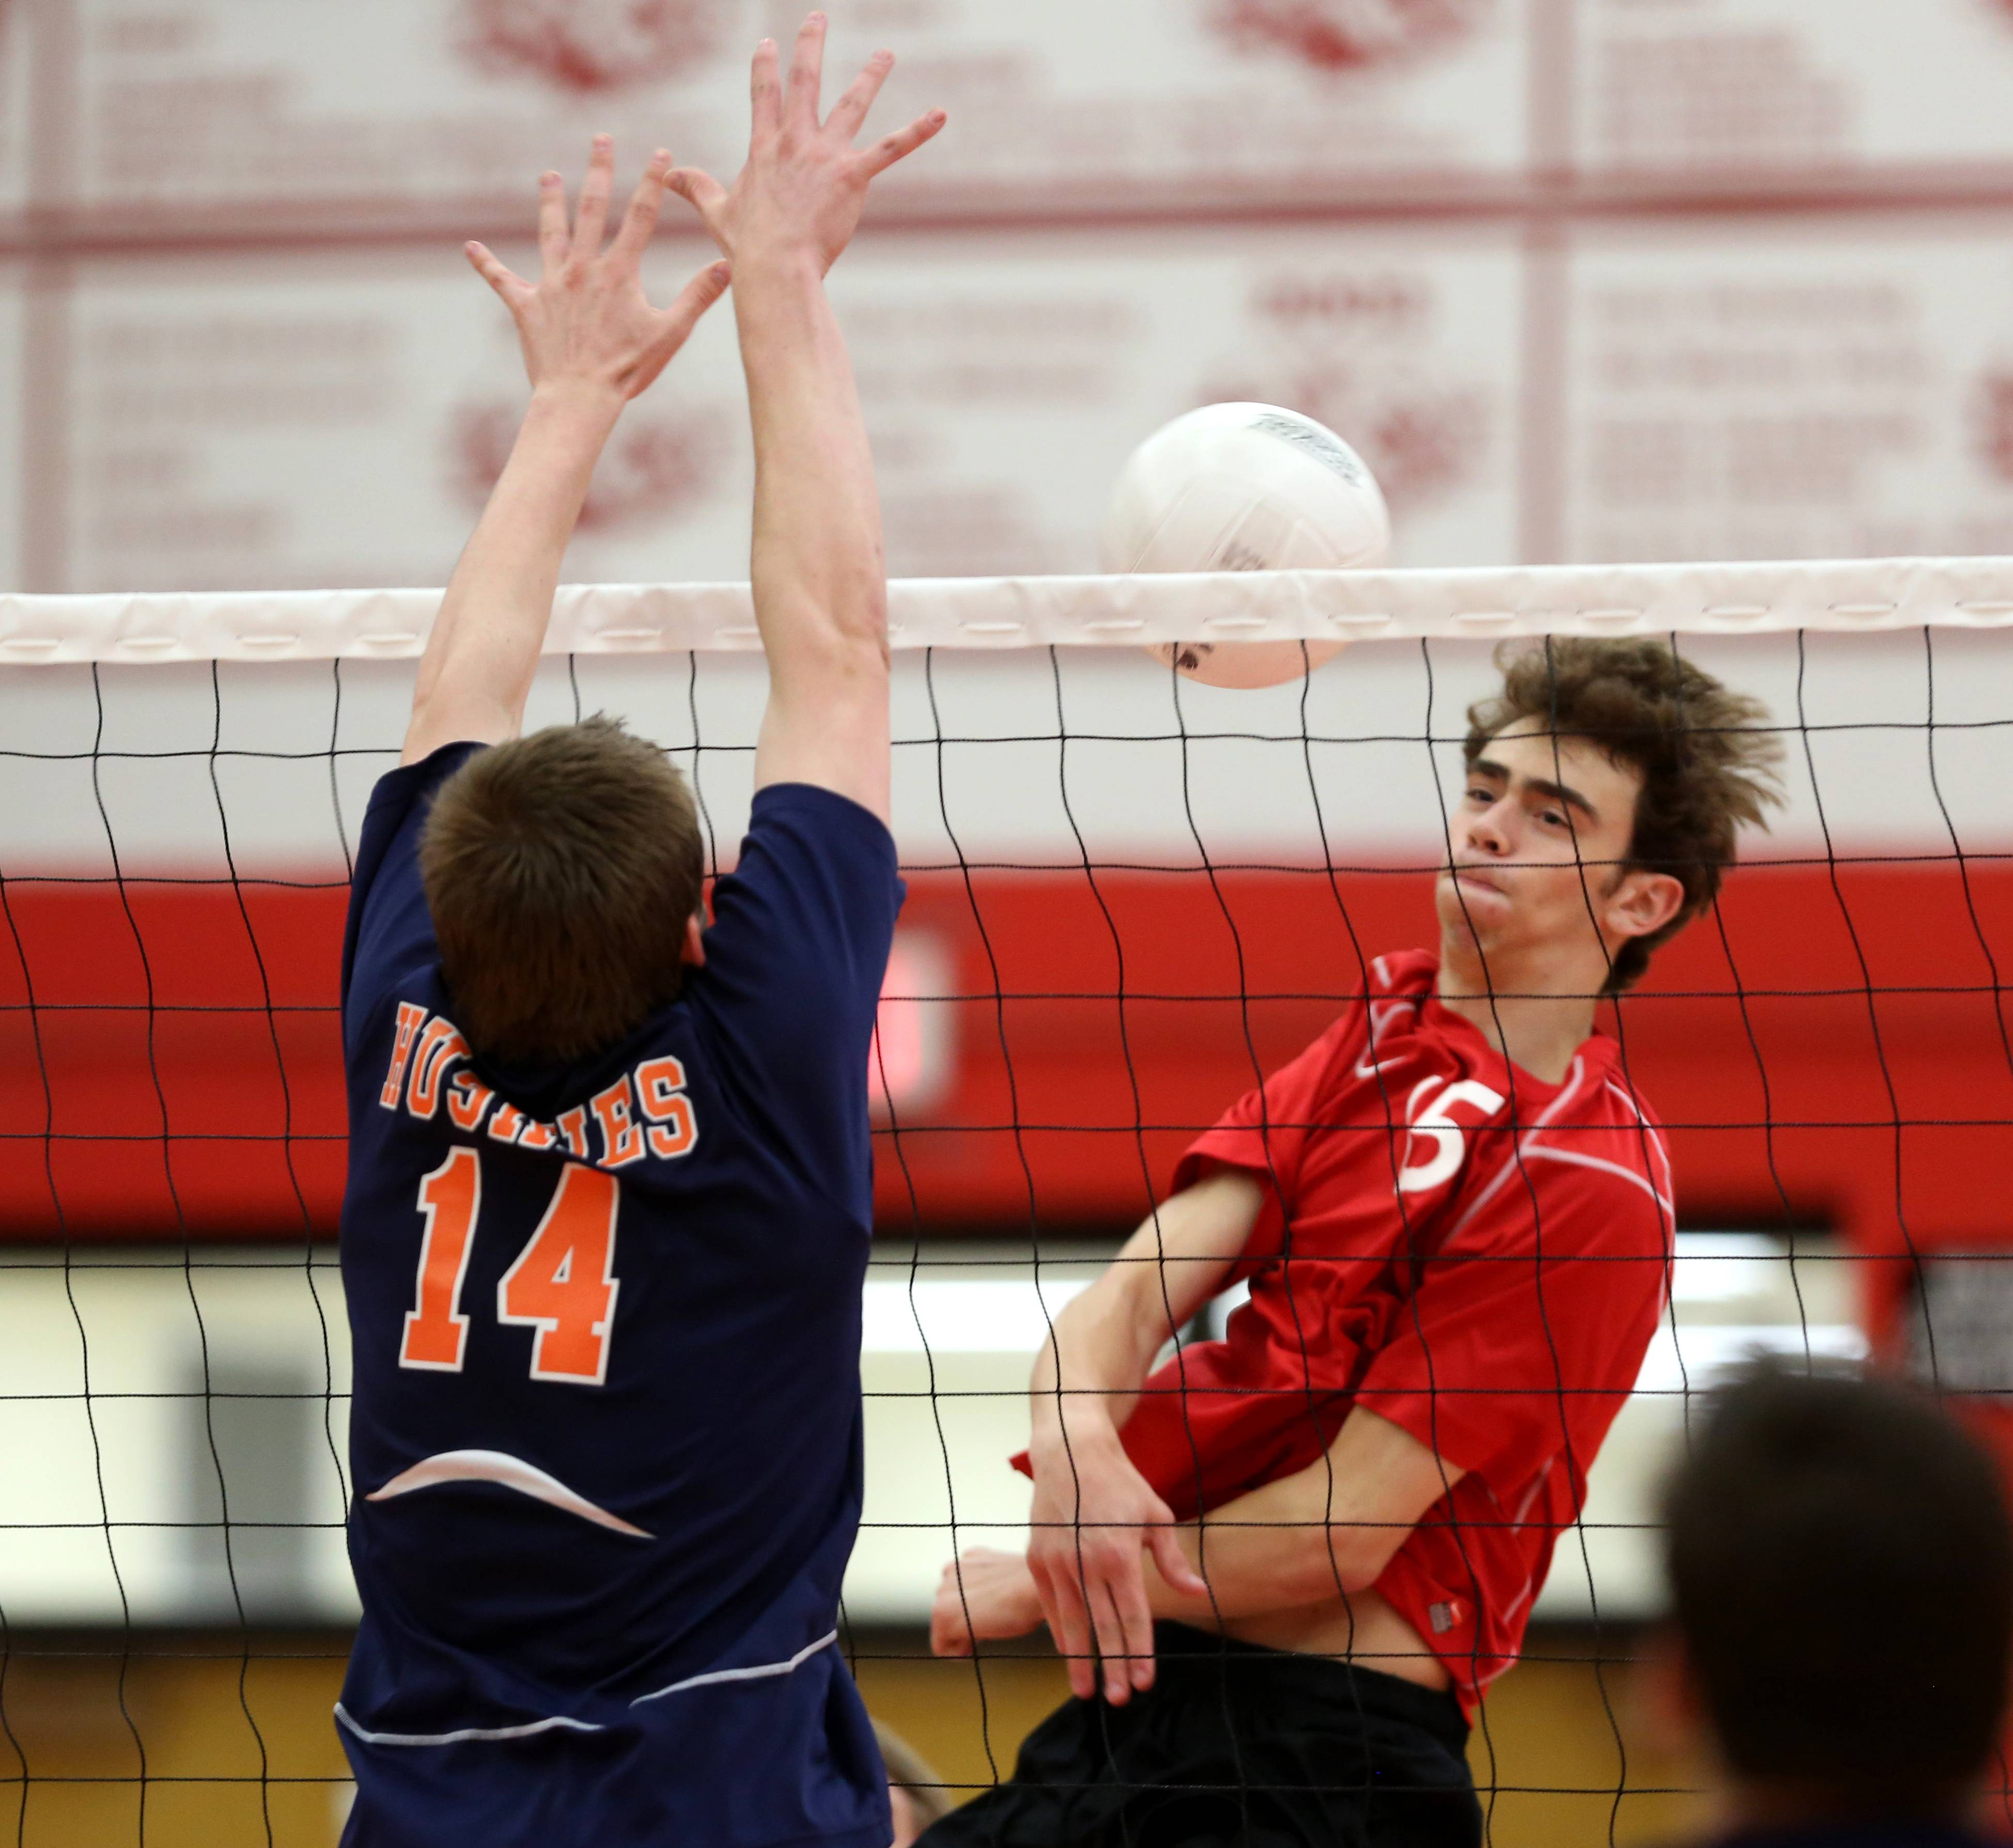 Naperville North's Frank Dore, left, battles Naperville Central's Tanner Beck, right, during Tuesday's volleyball match.